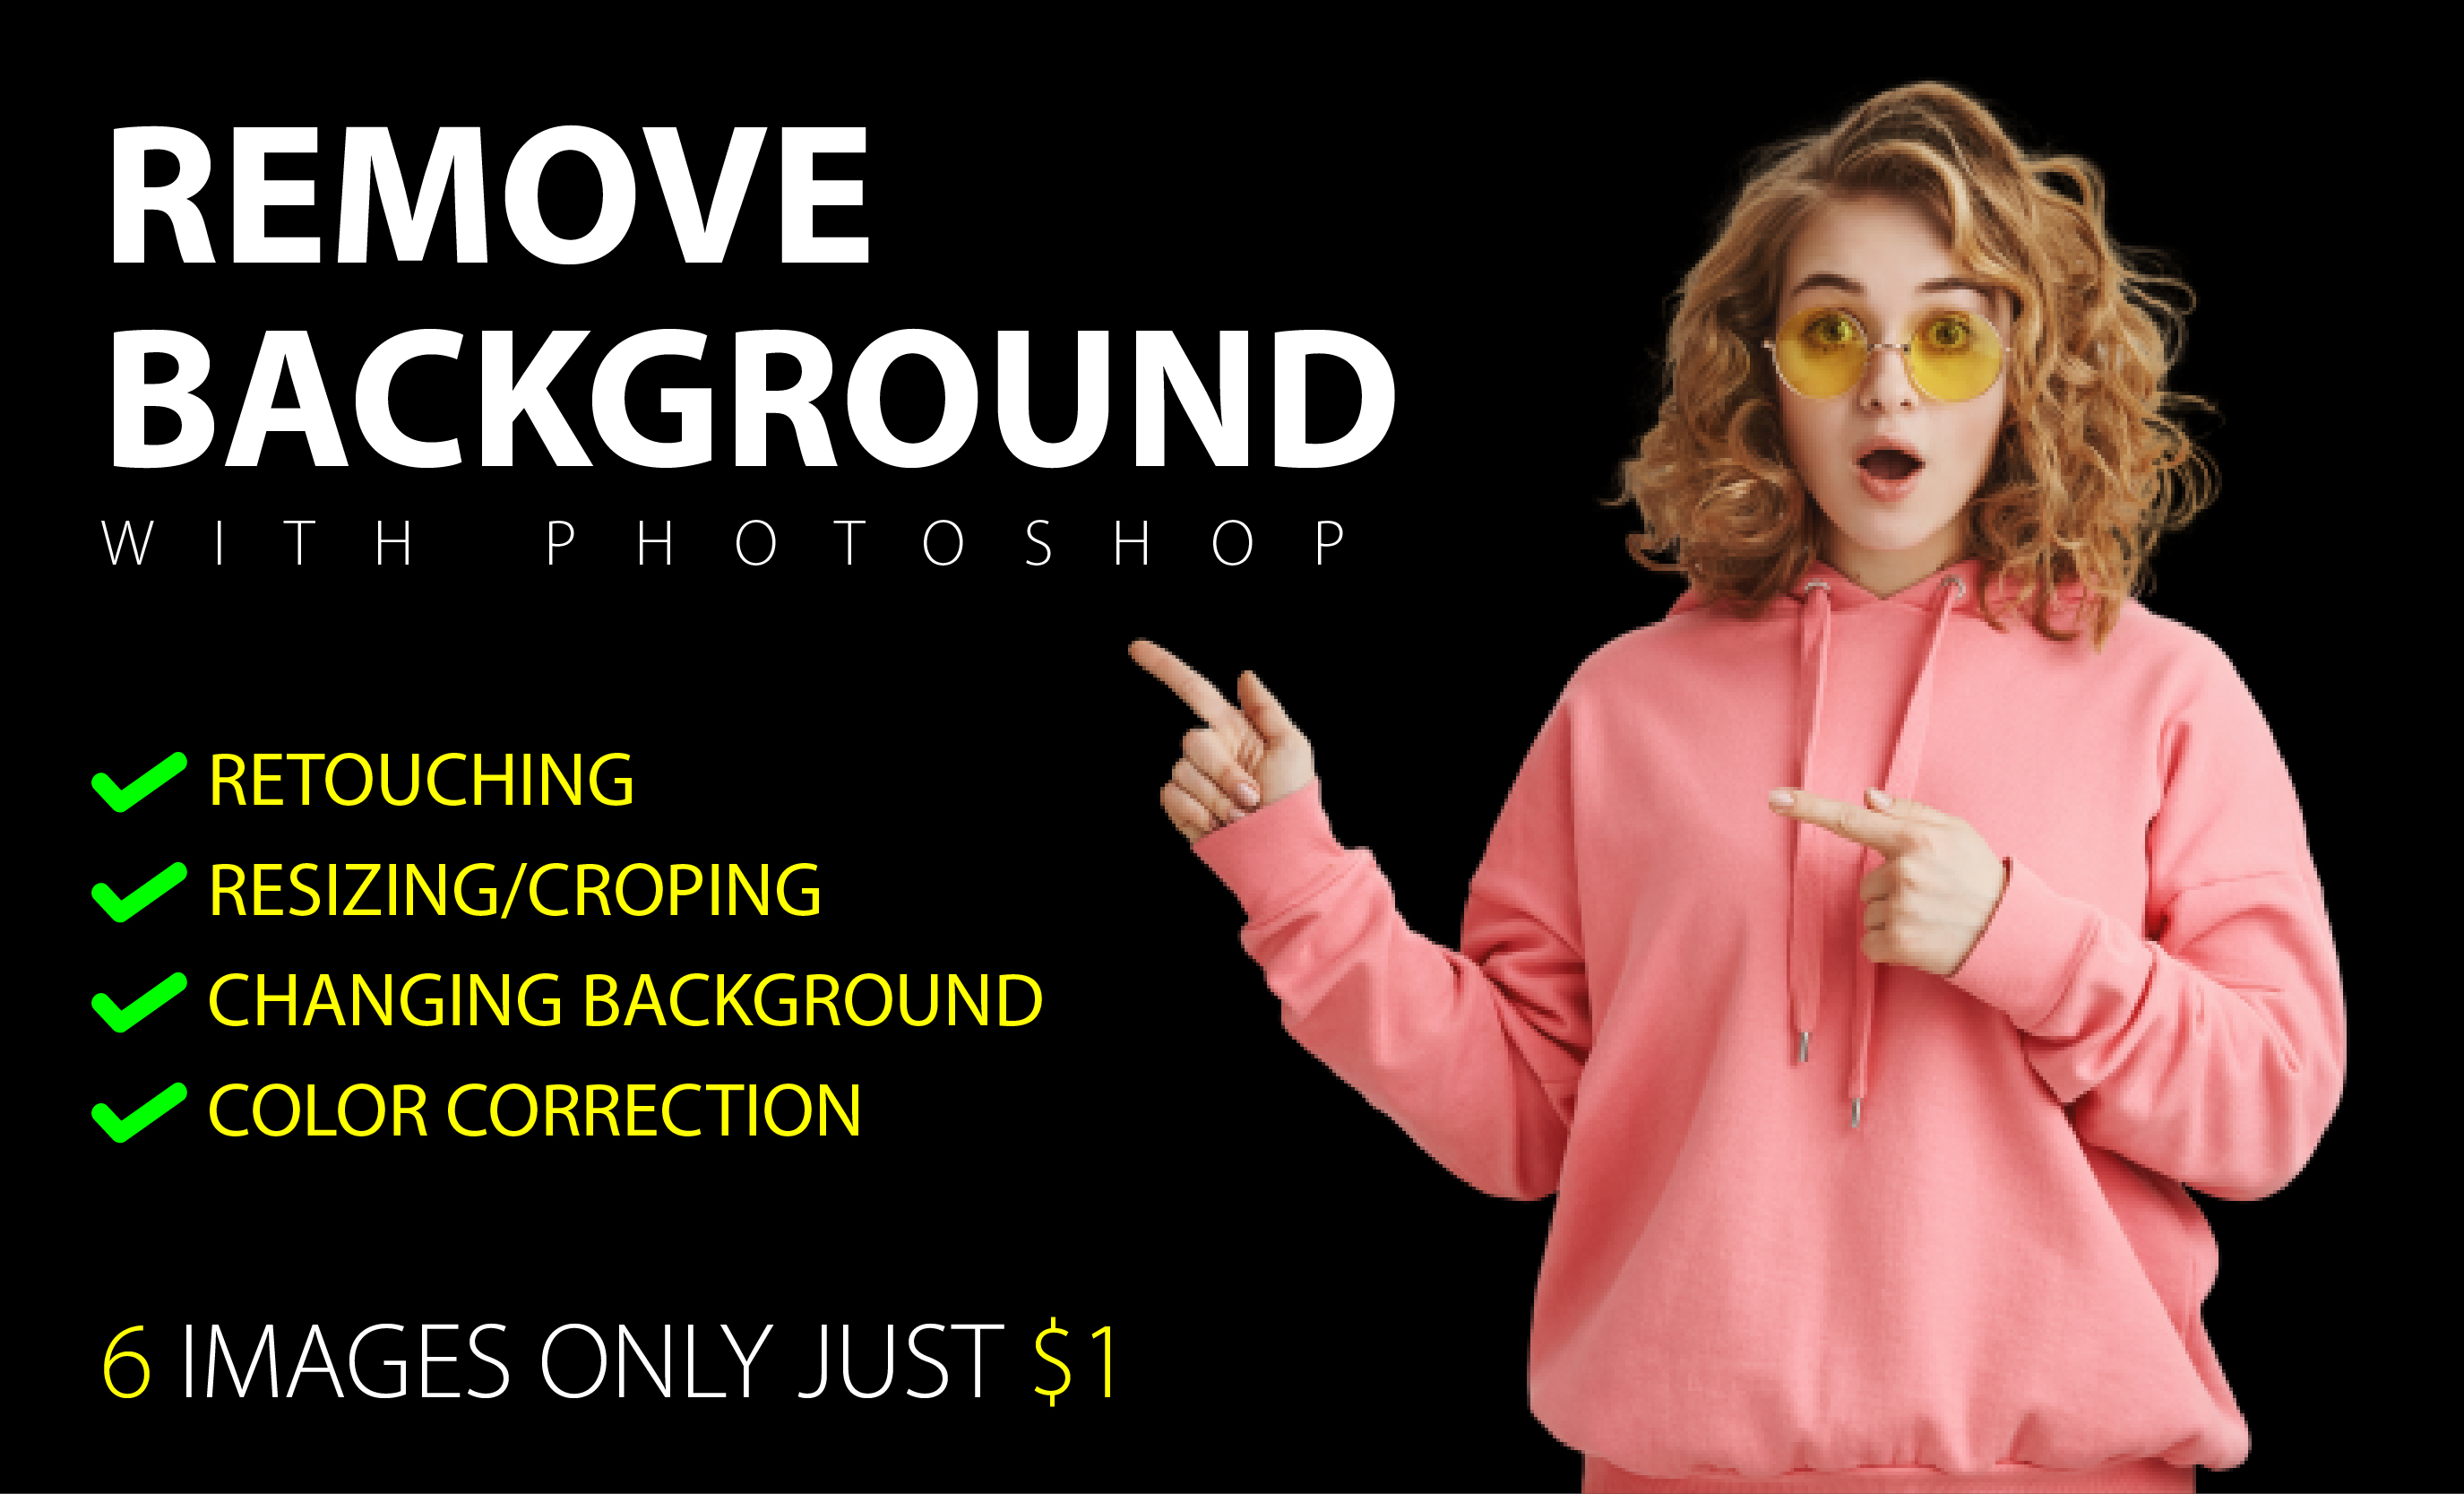 I will do background remove, photoshop editing and retouching within 3hr